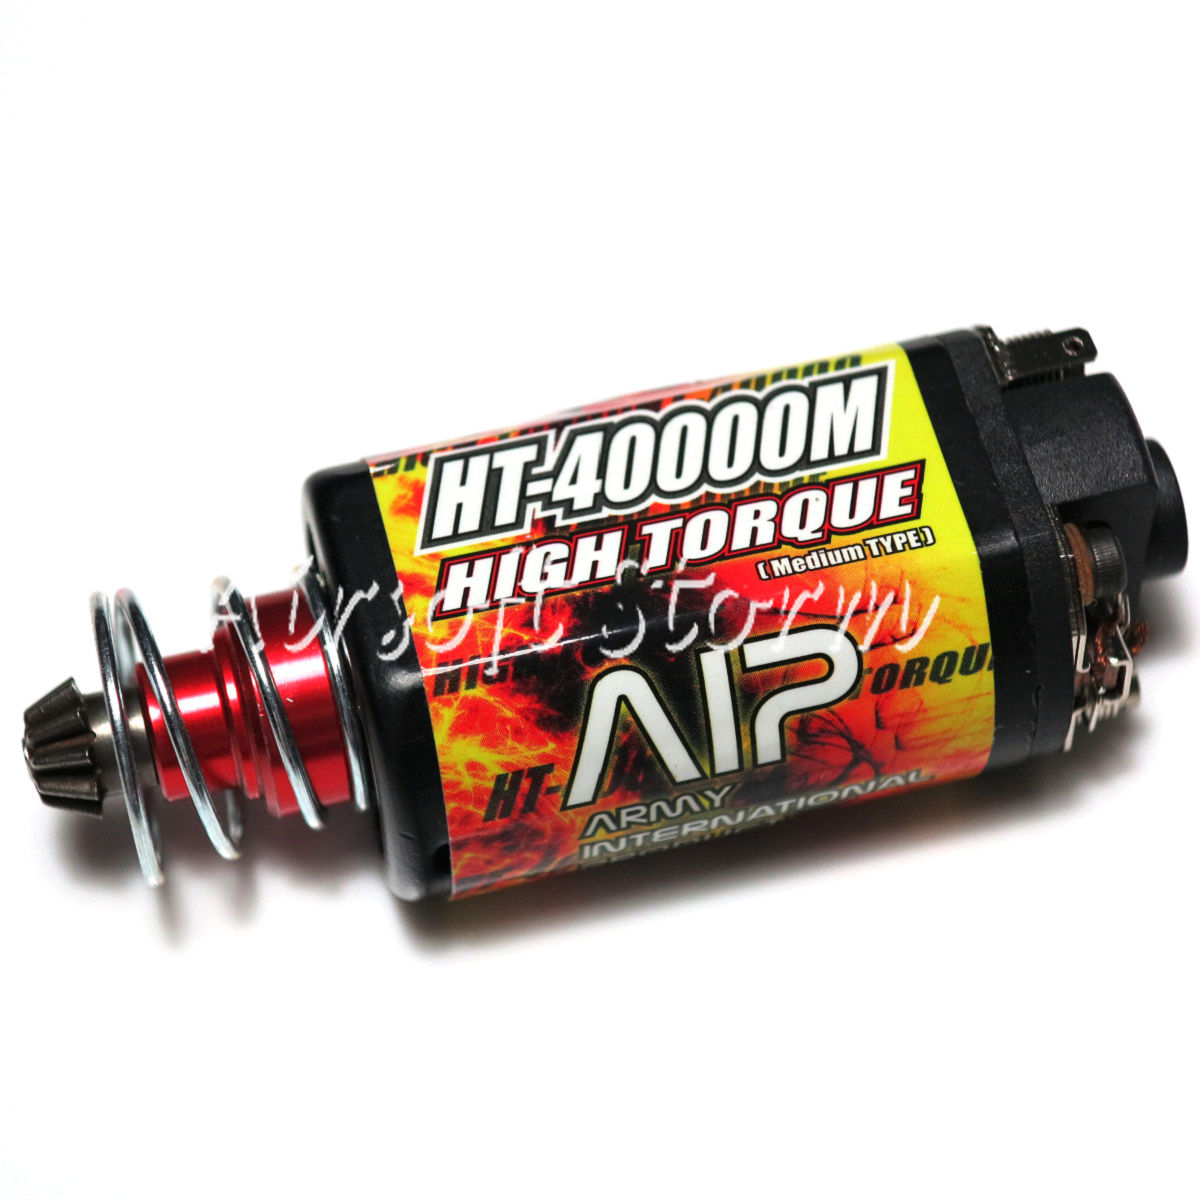 Airsoft Tactical Gear AIP High Torque AEG Motor HT-40000 (Medium Type)